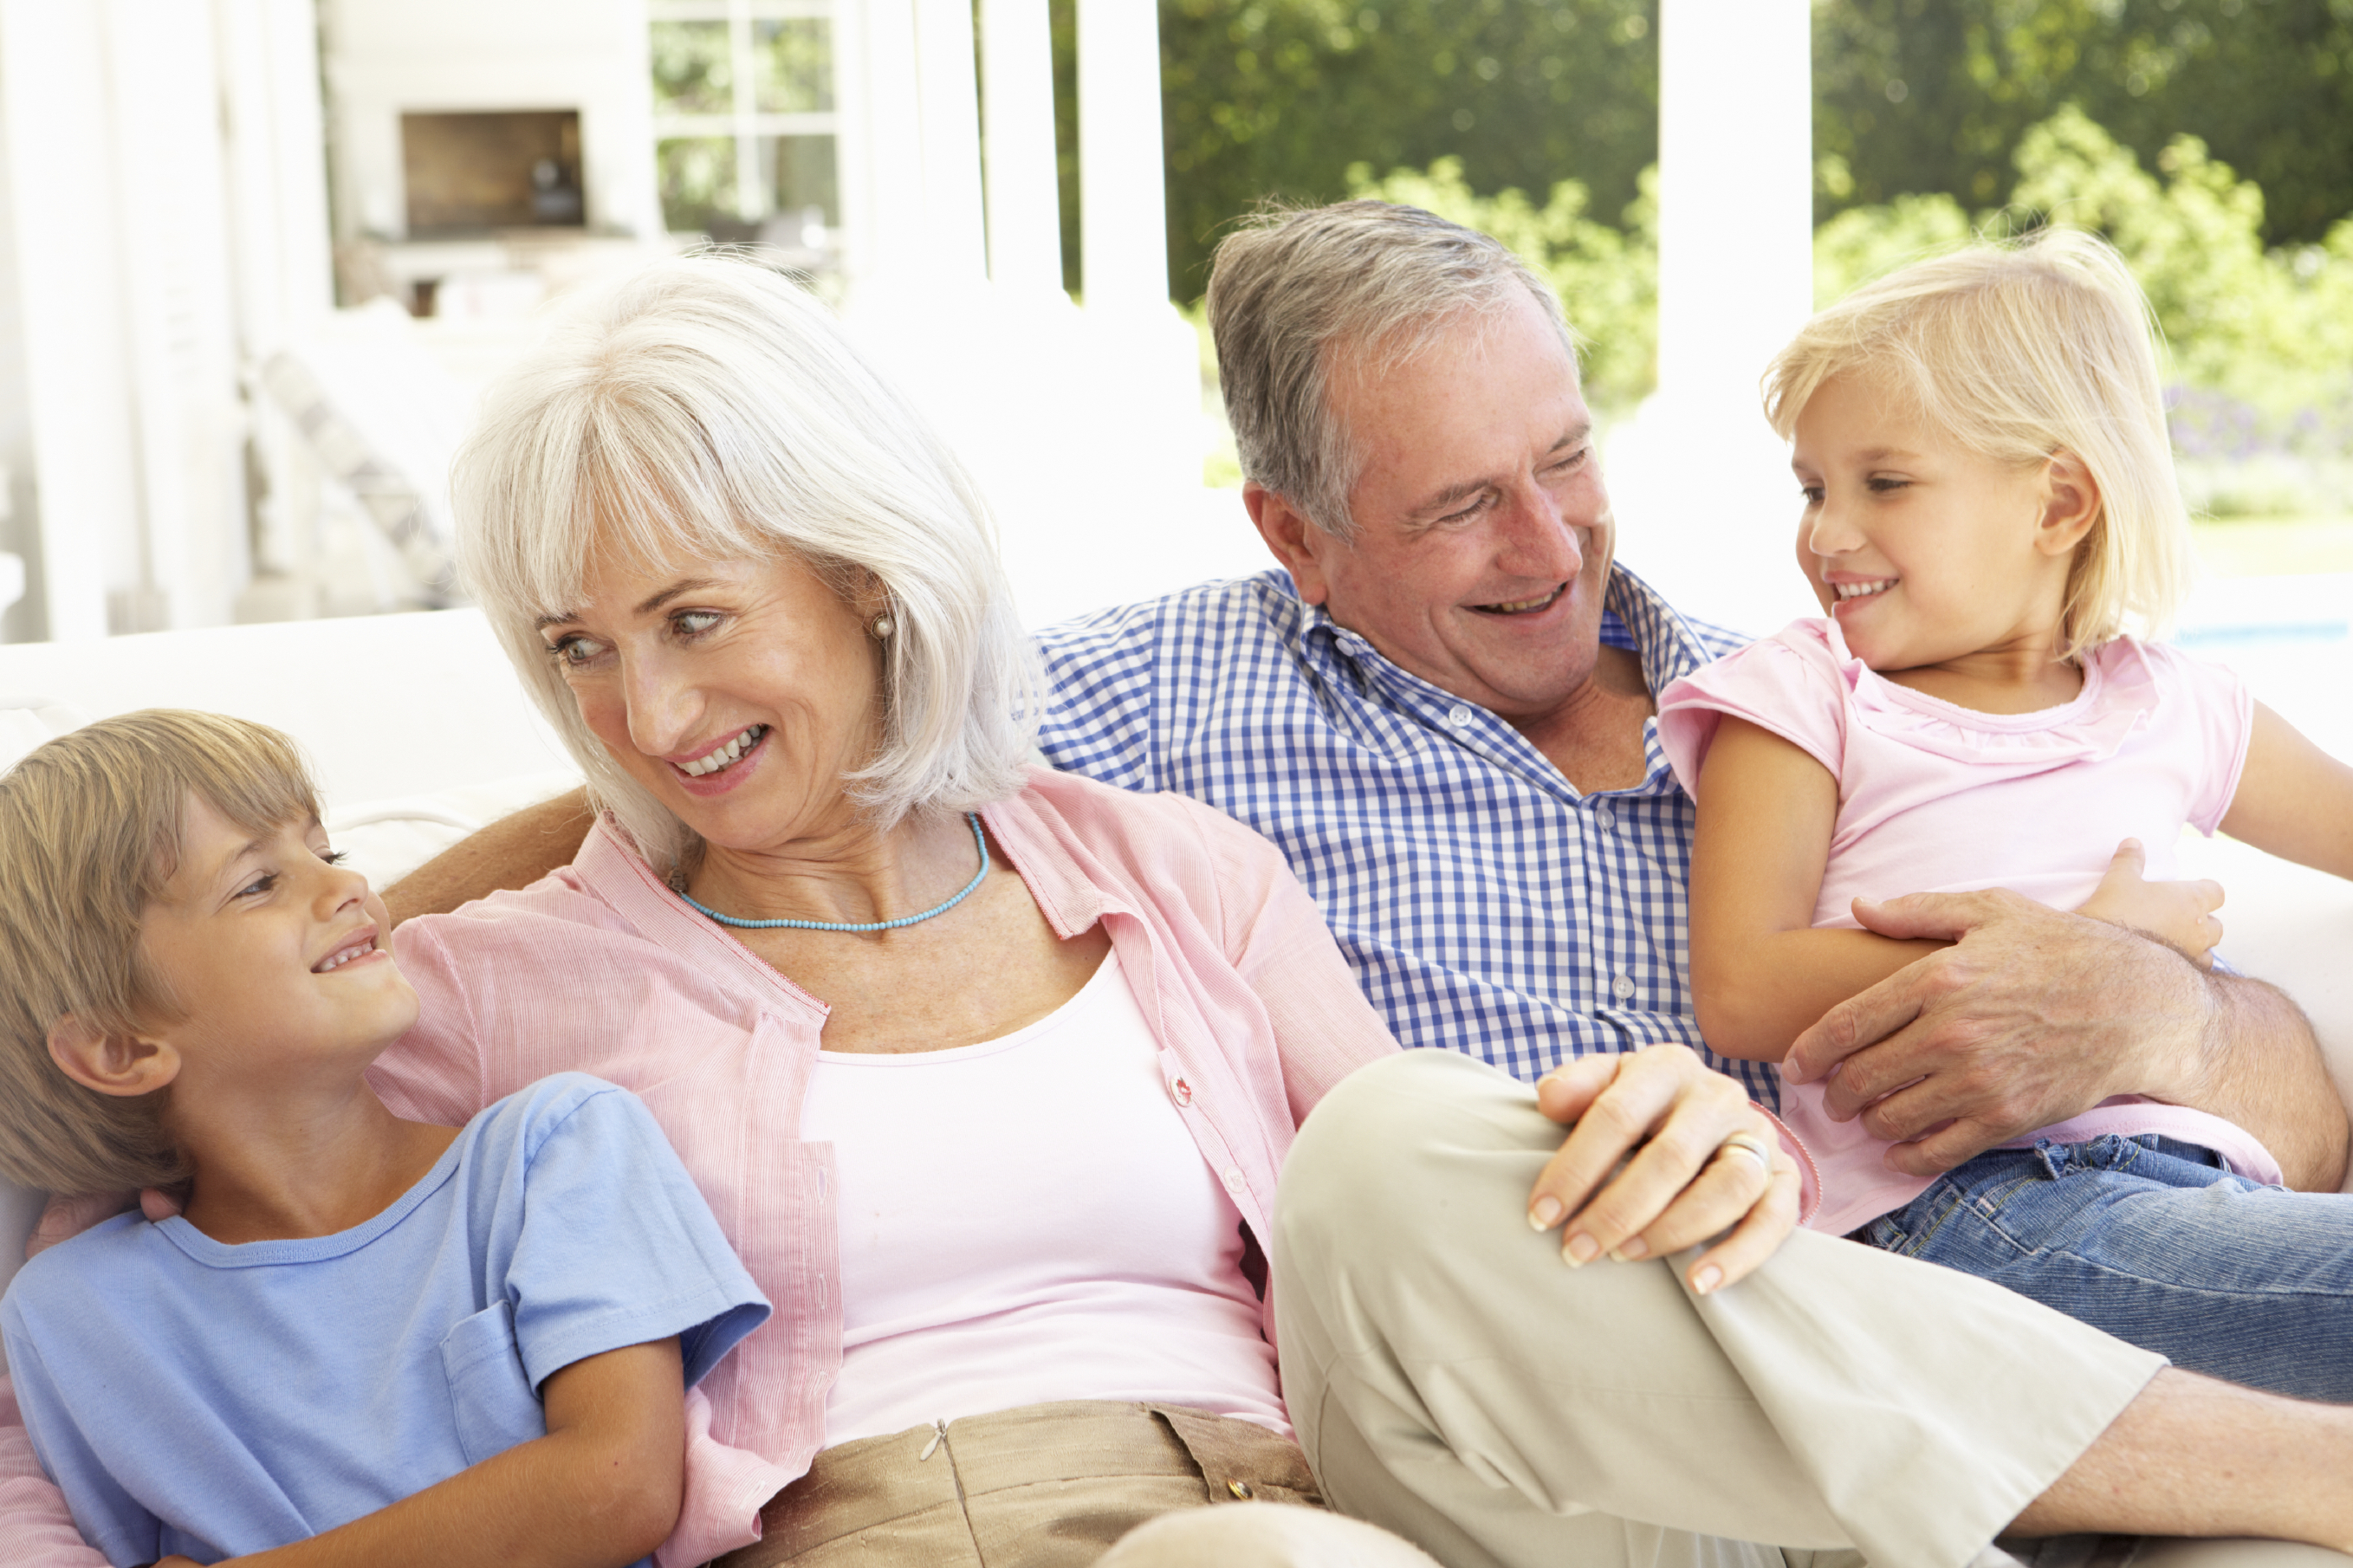 grandparents and holiday visitation rights